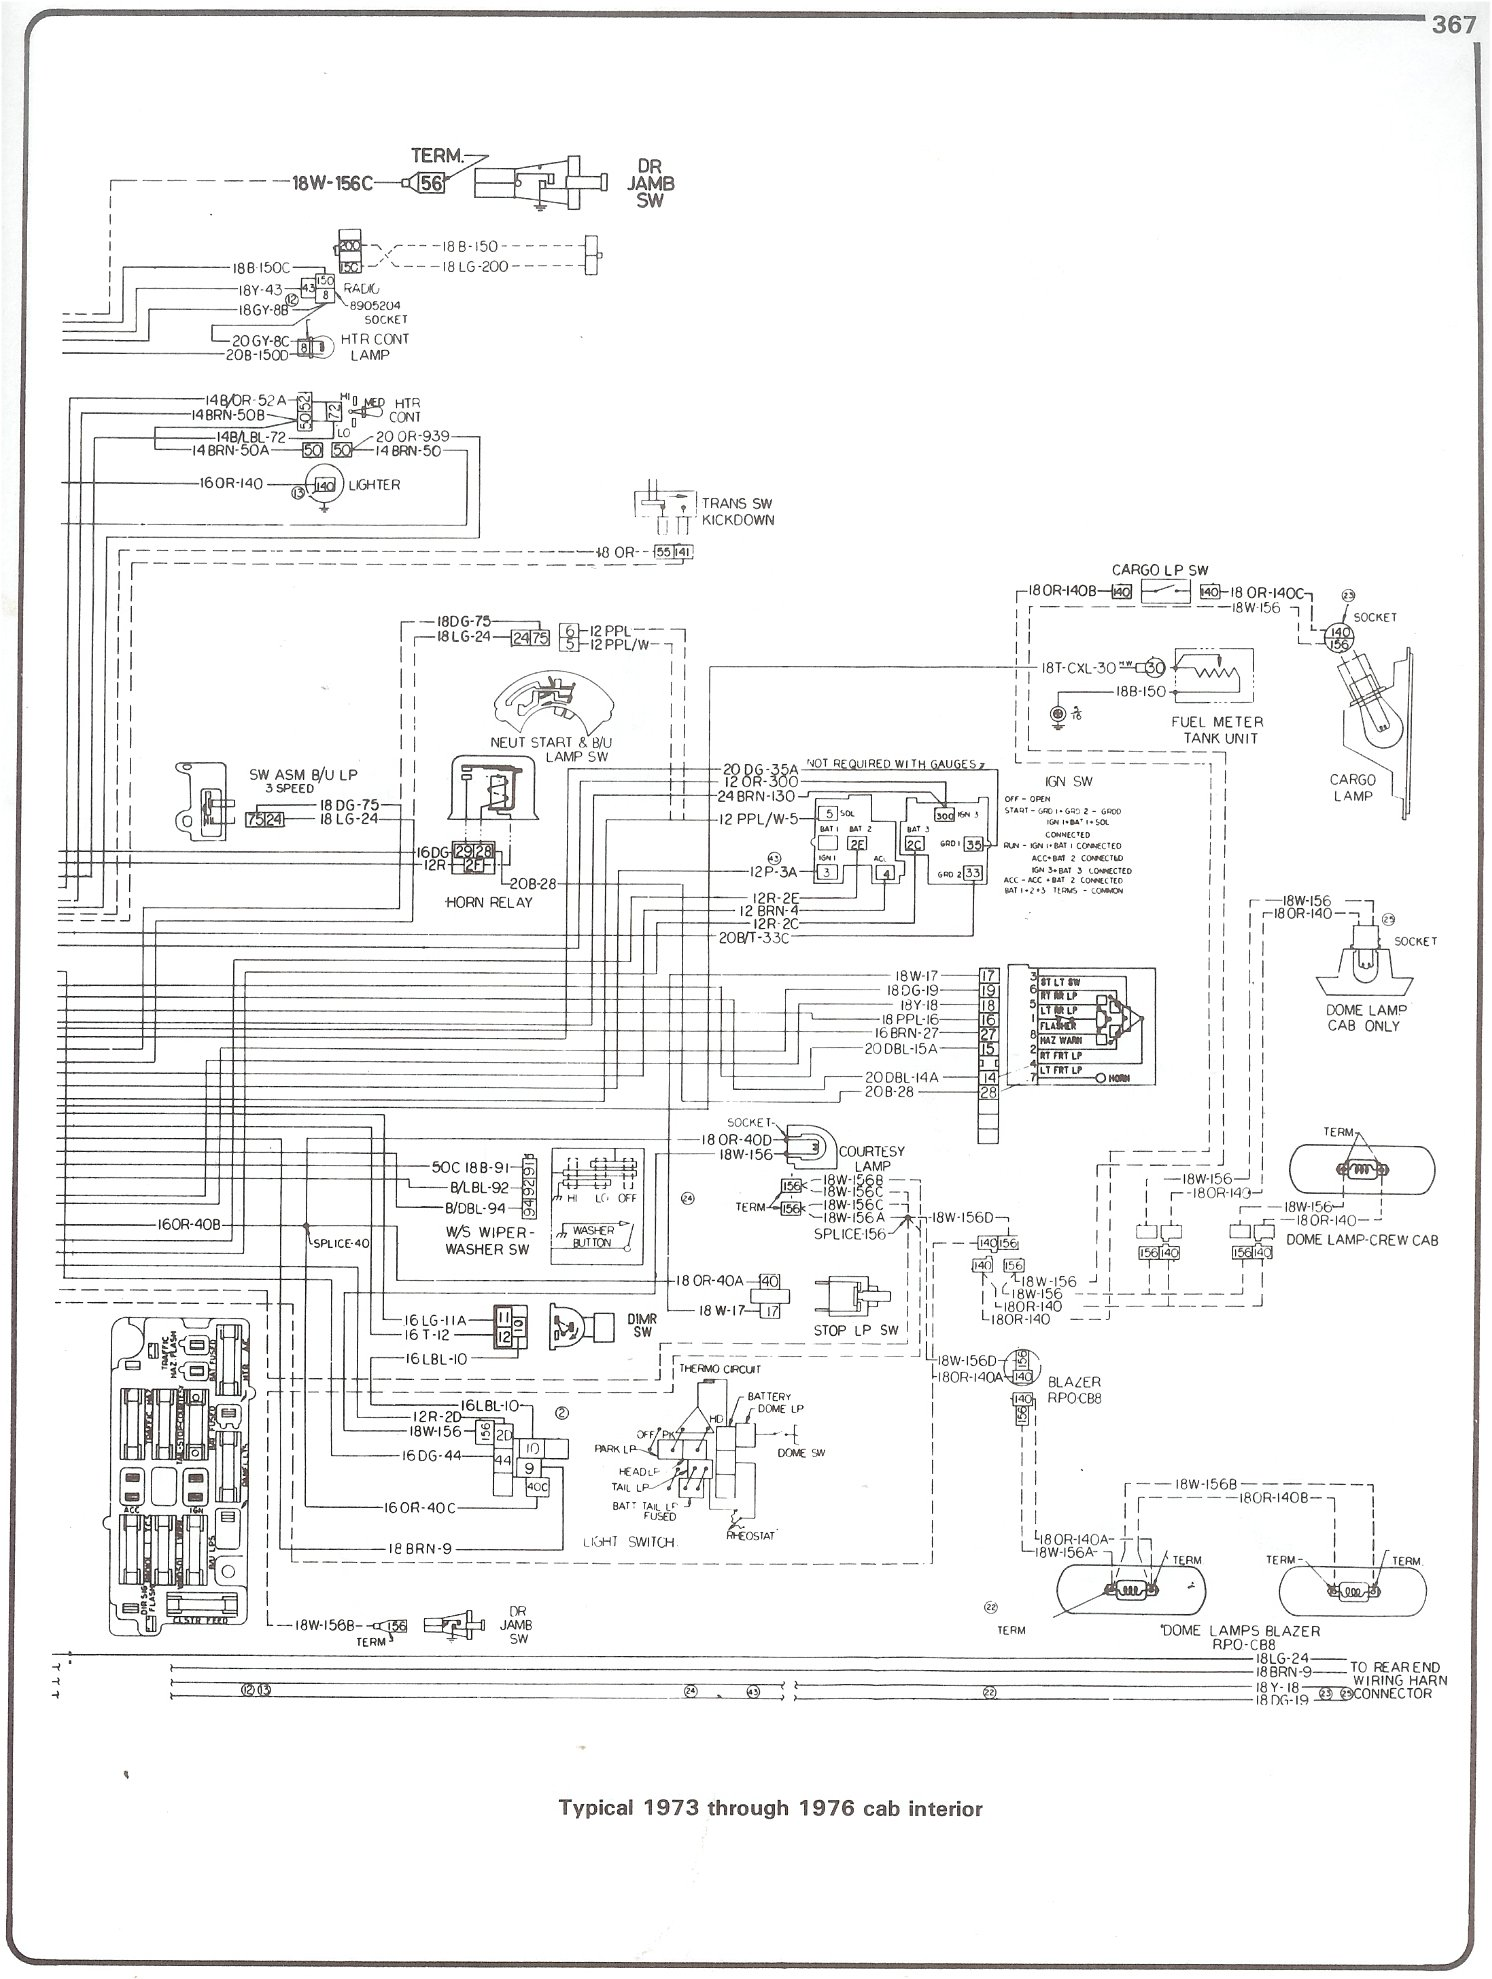 Cab Inter on 1966 ford pick up wiring diagram